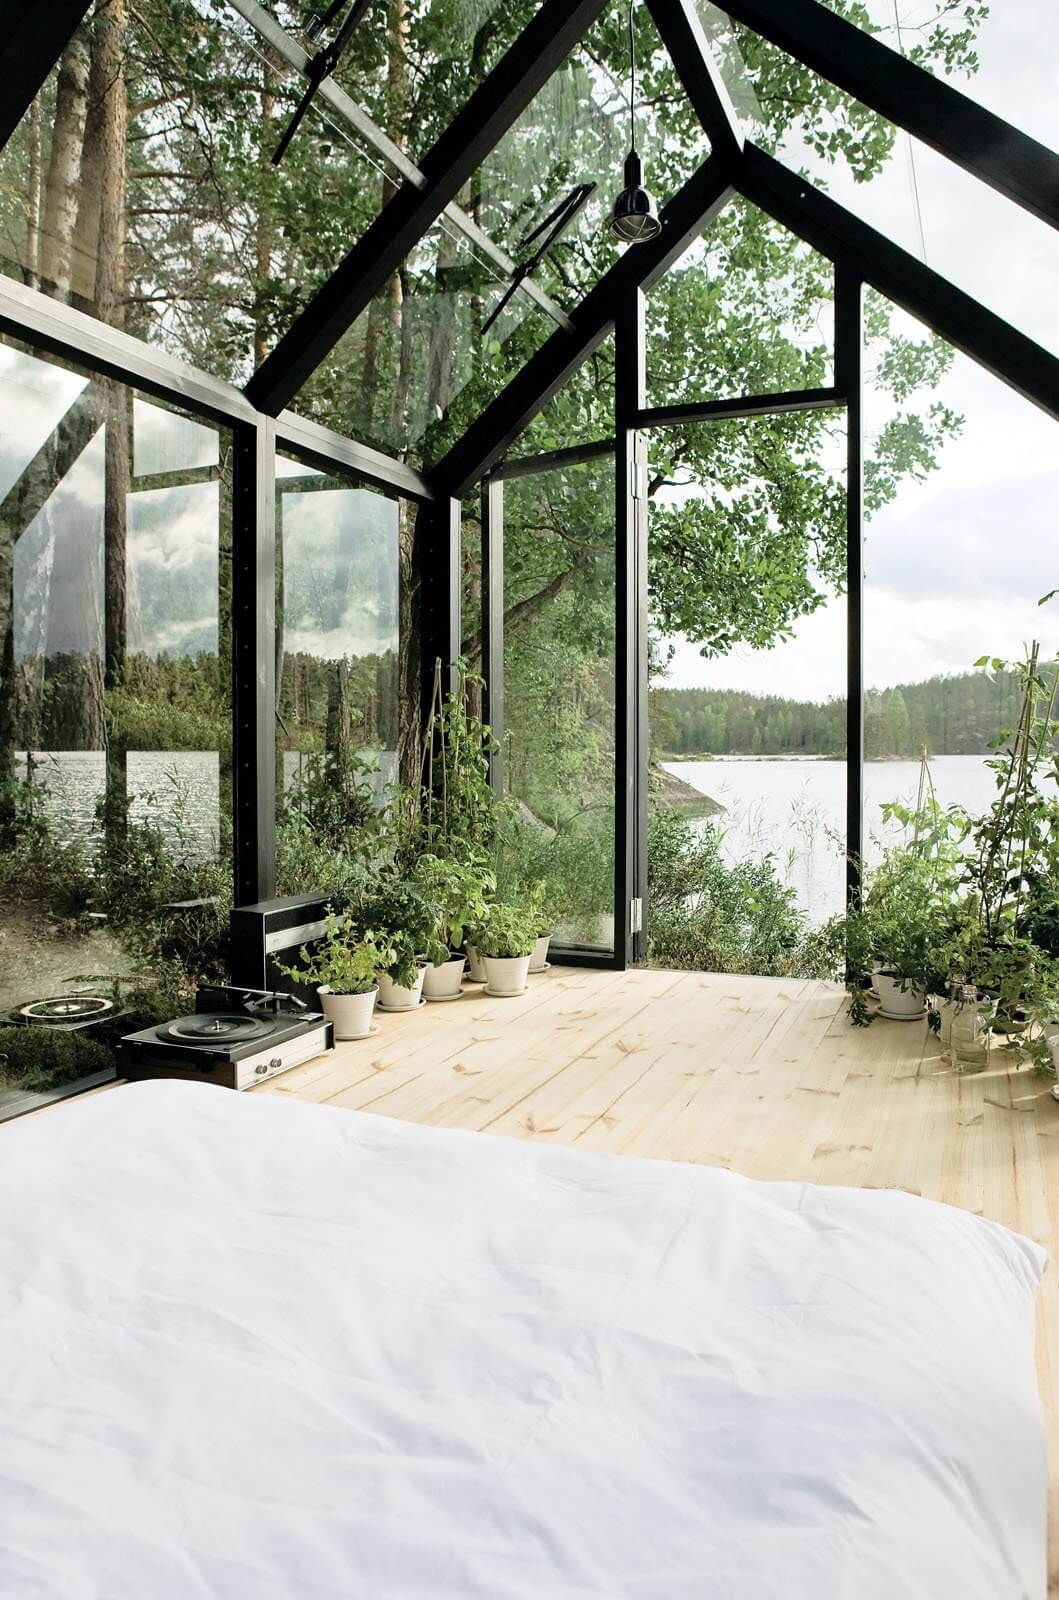 Cabin Fever: 10 Cozy Cabins for Escaping The World